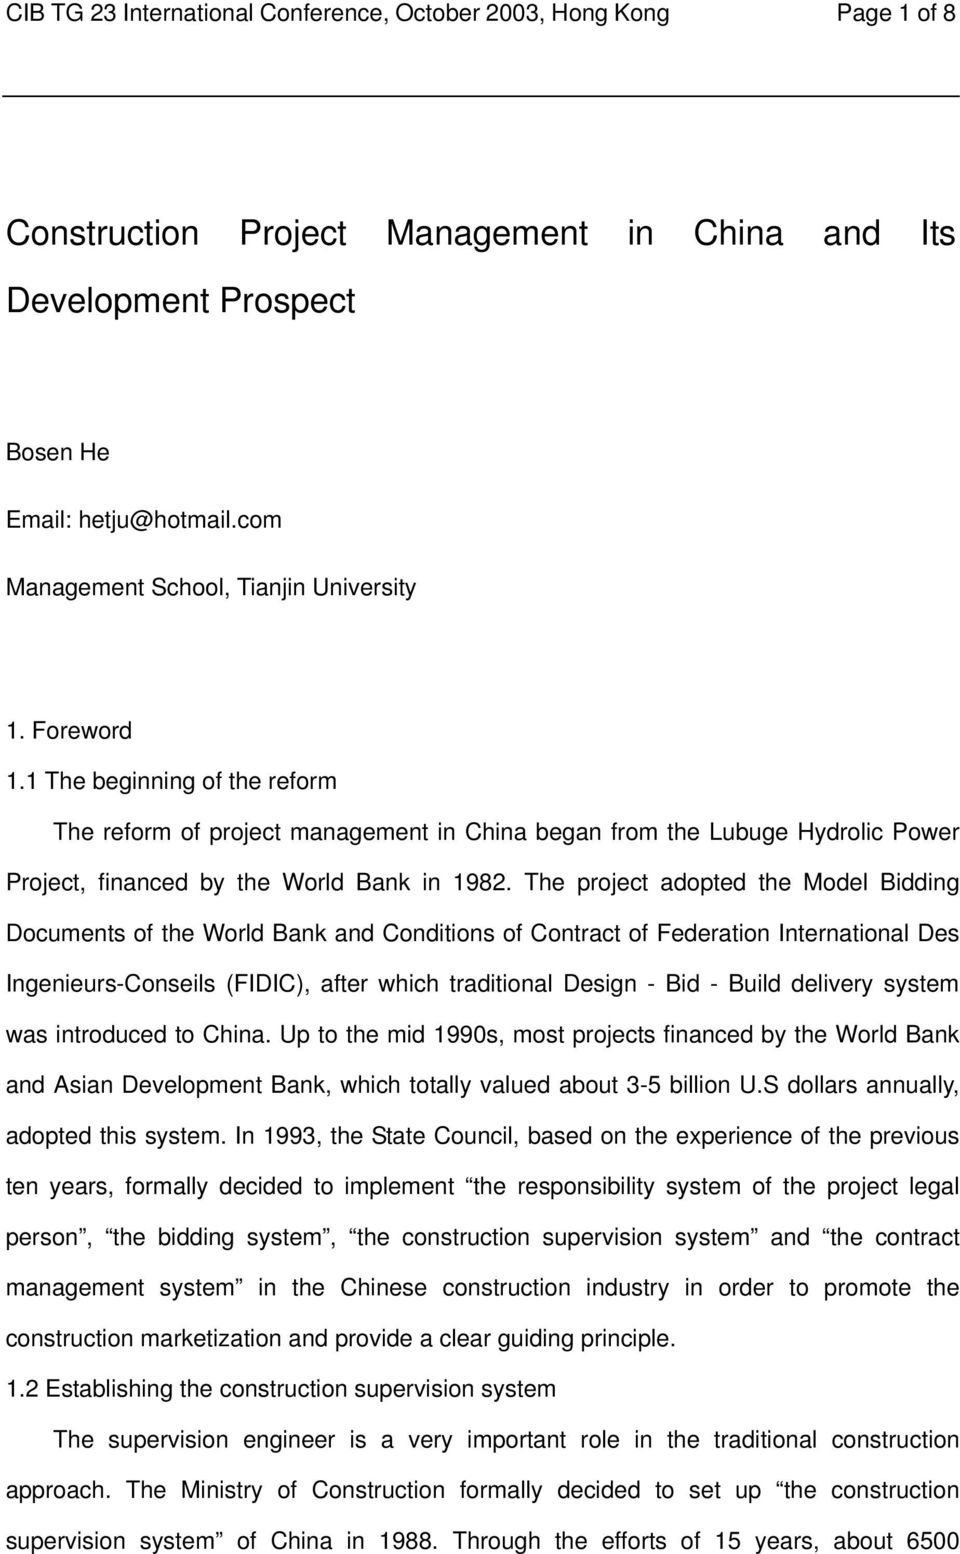 1 The beginning of the reform The reform of project management in China began from the Lubuge Hydrolic Power Project, financed by the World Bank in 1982.